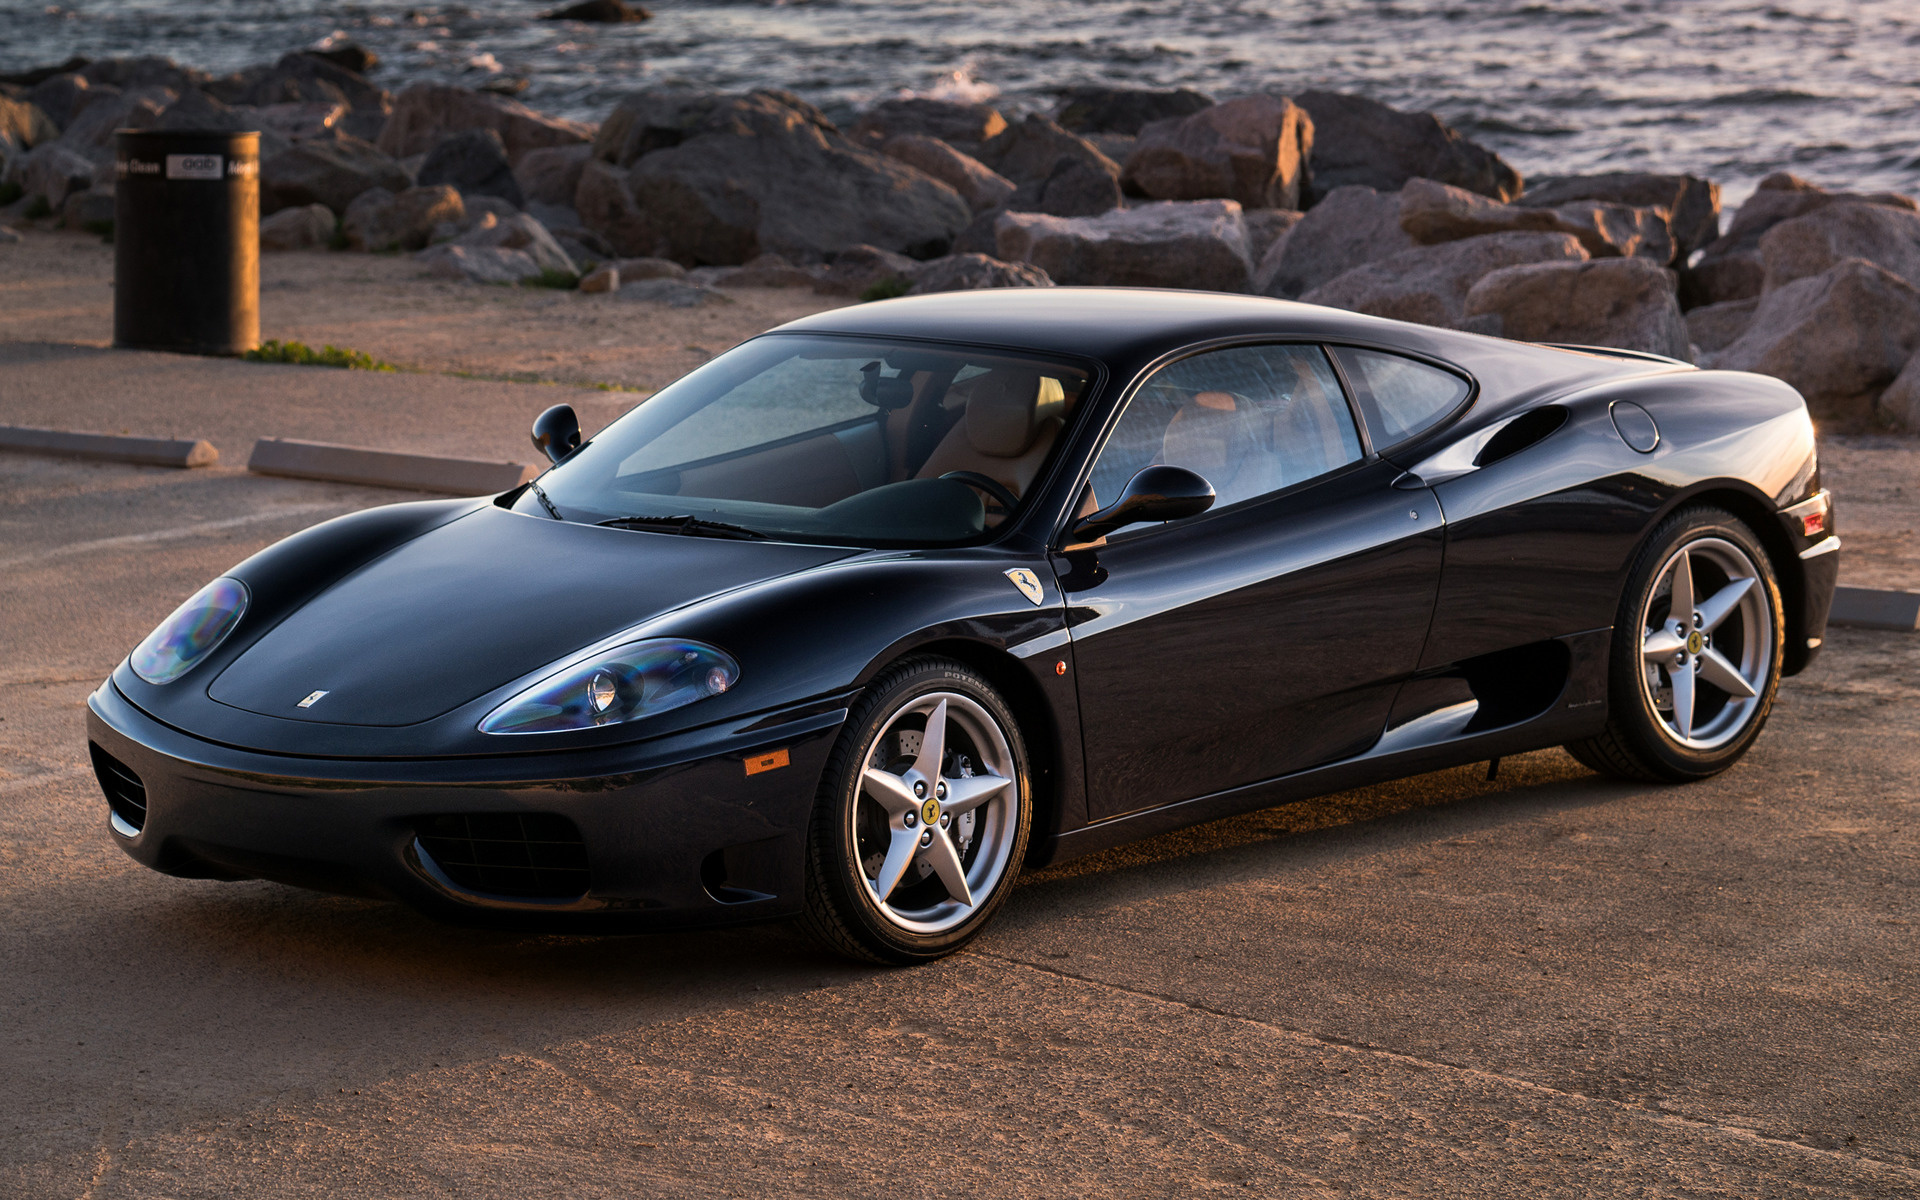 Genesis Car Wallpaper Ferrari 360 Modena 1999 Us Wallpapers And Hd Images